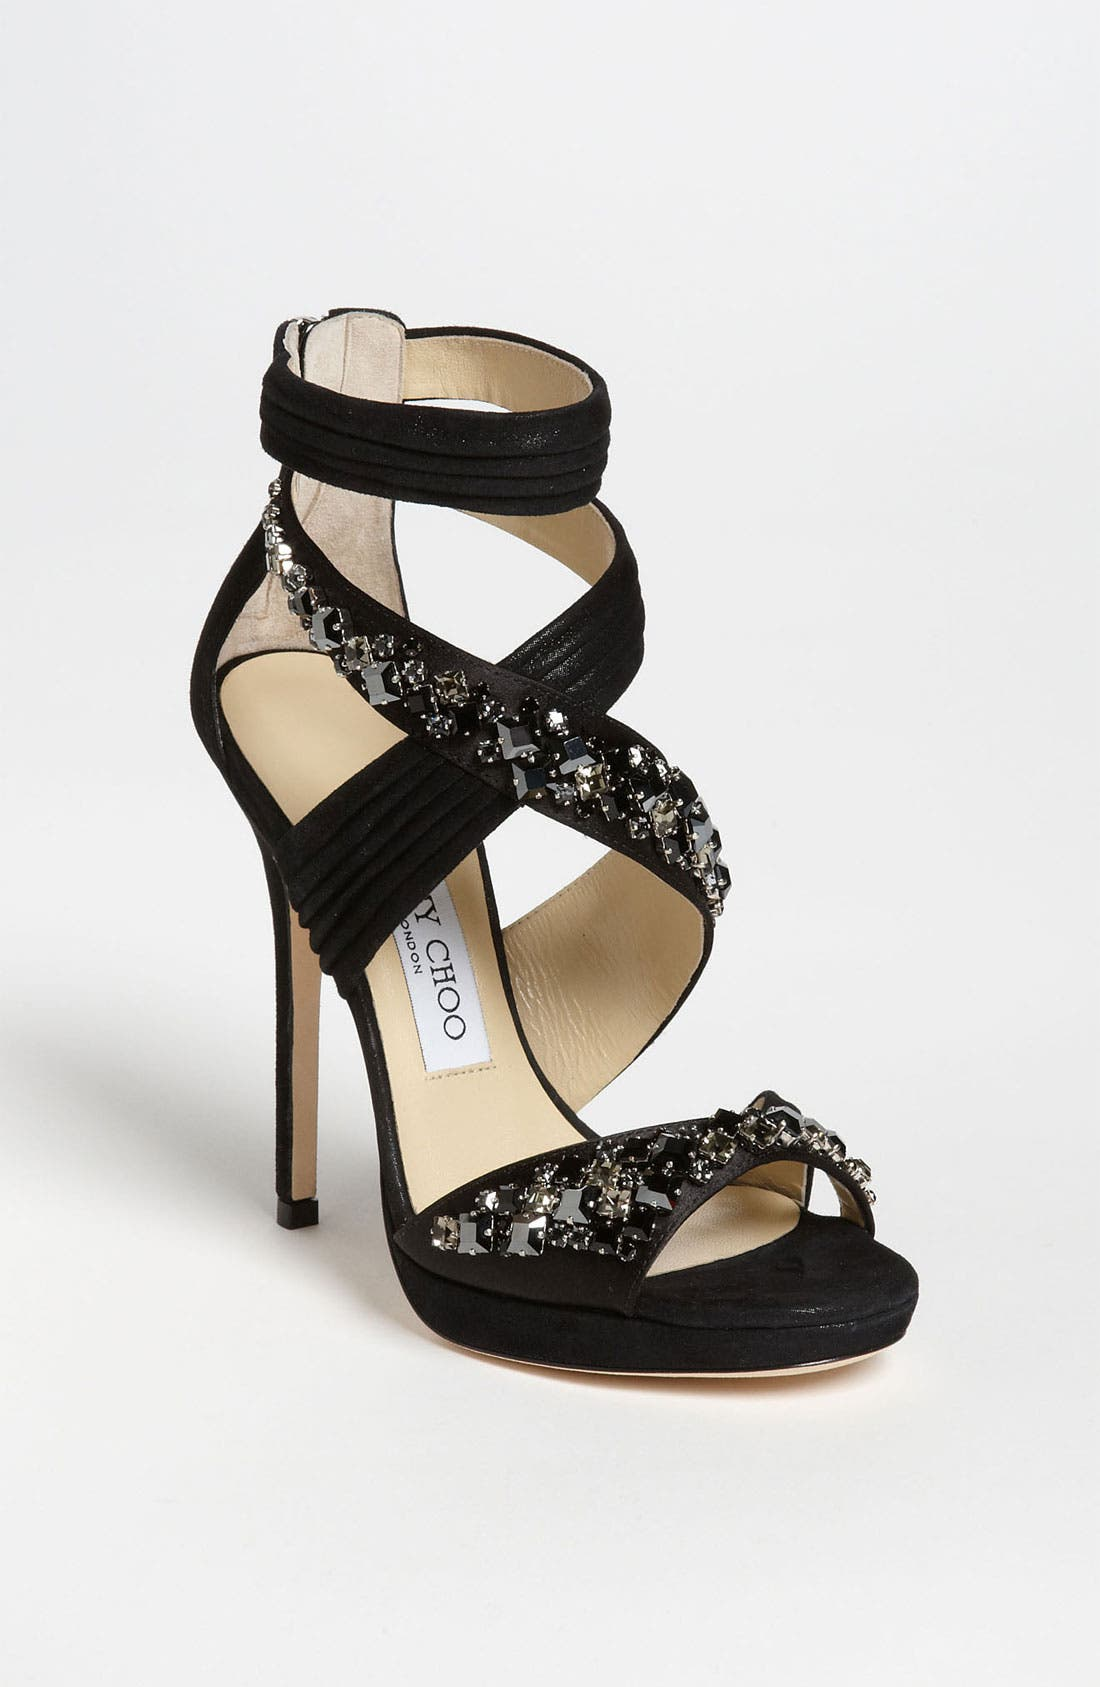 Alternate Image 1 Selected - Jimmy Choo 'Kani' Sandal